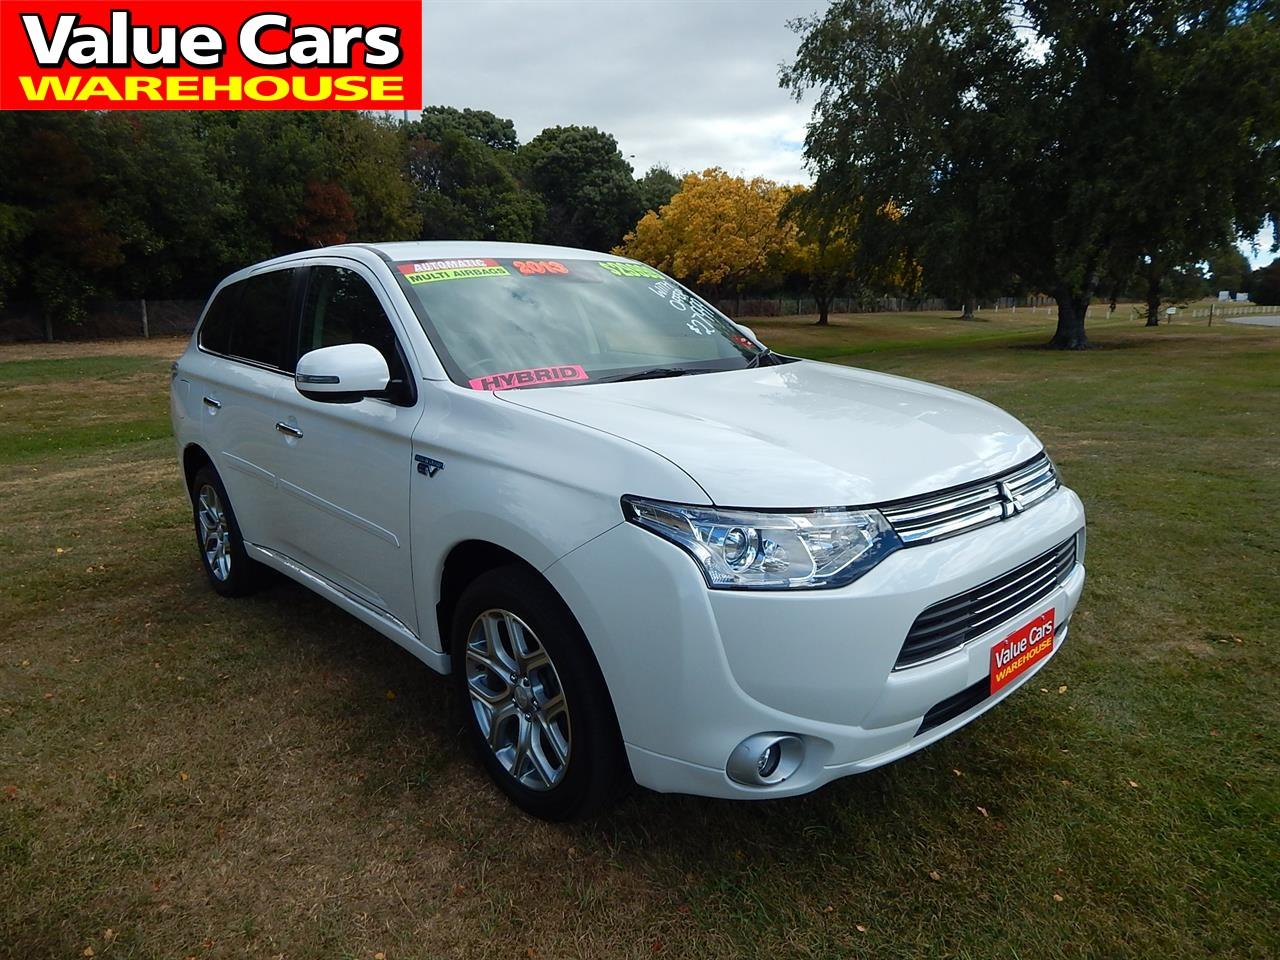 image-0, 2013 Mitsubishi Outlander PHEV(Plug-in Hybrid) at Christchurch